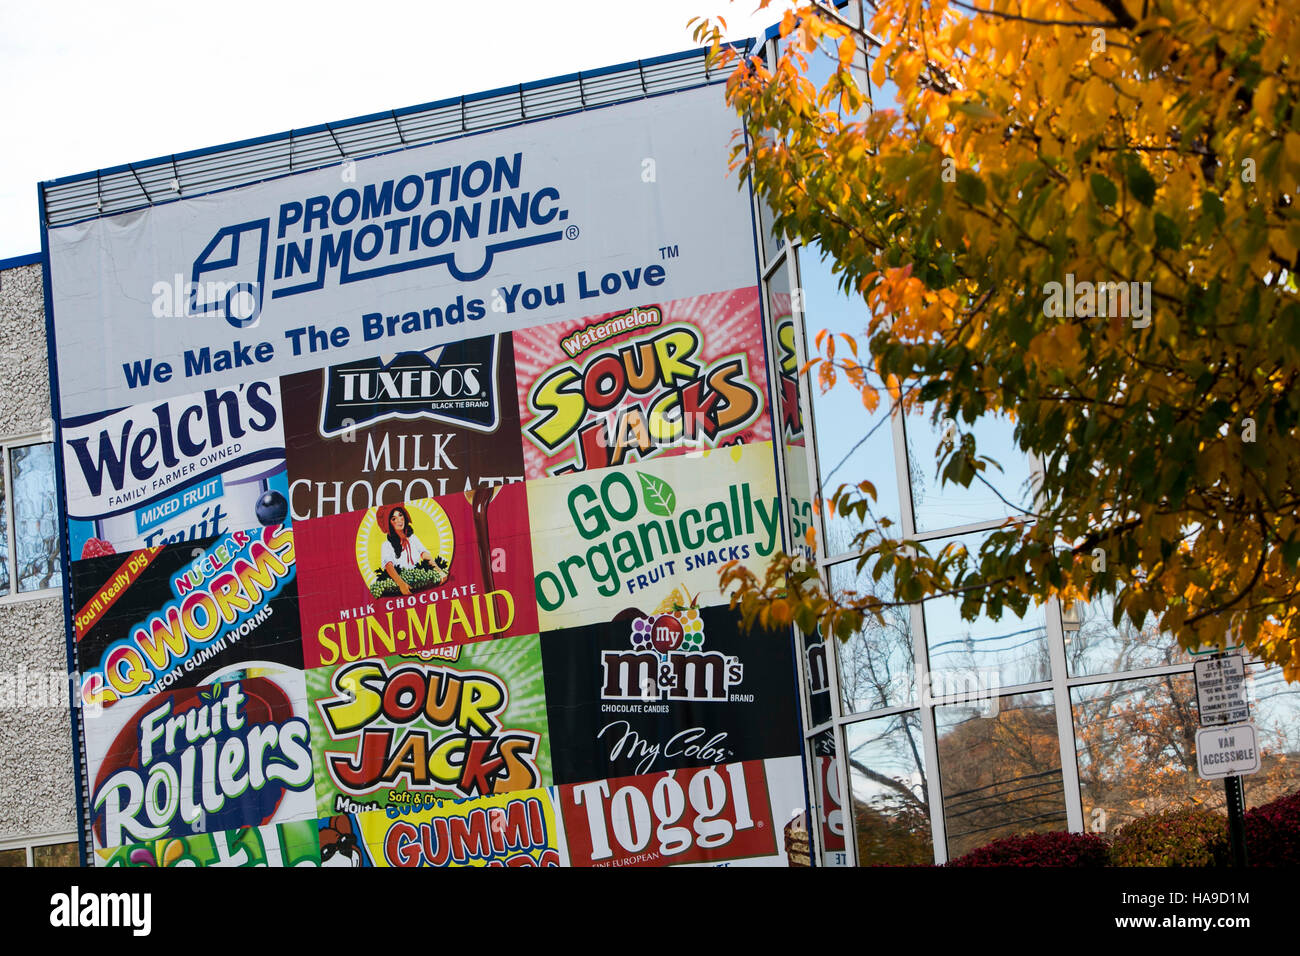 A logo sign outside of a facility occupied by The Promotion In Motion Companies, Inc., in Somerset, New Jersey on - Stock Image